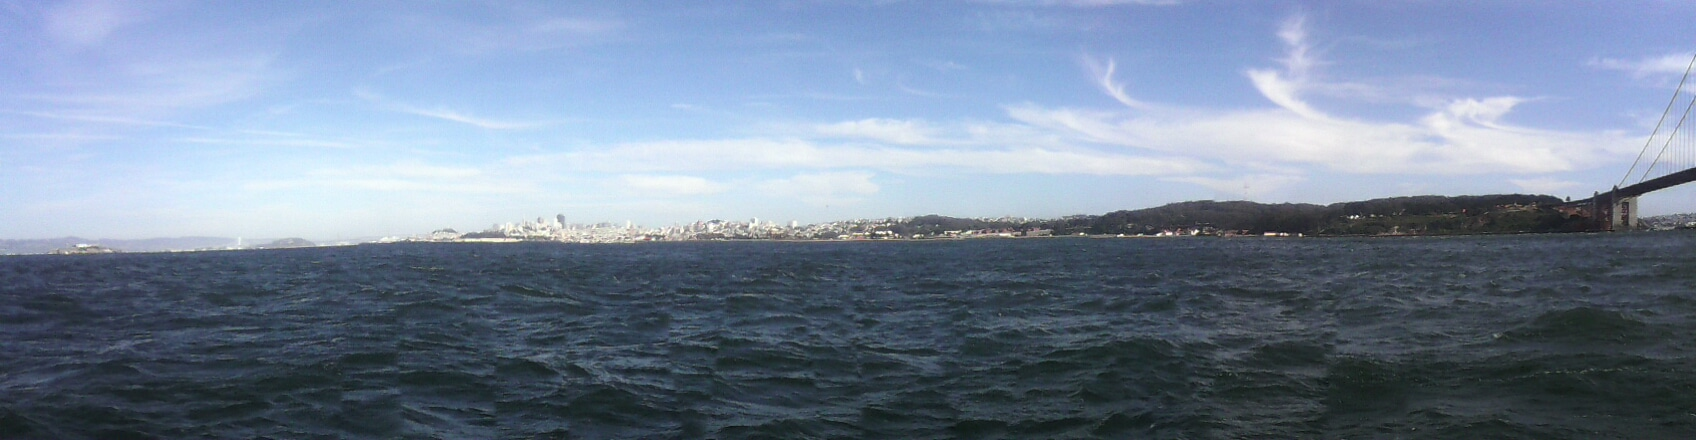 San Francisco from the boat